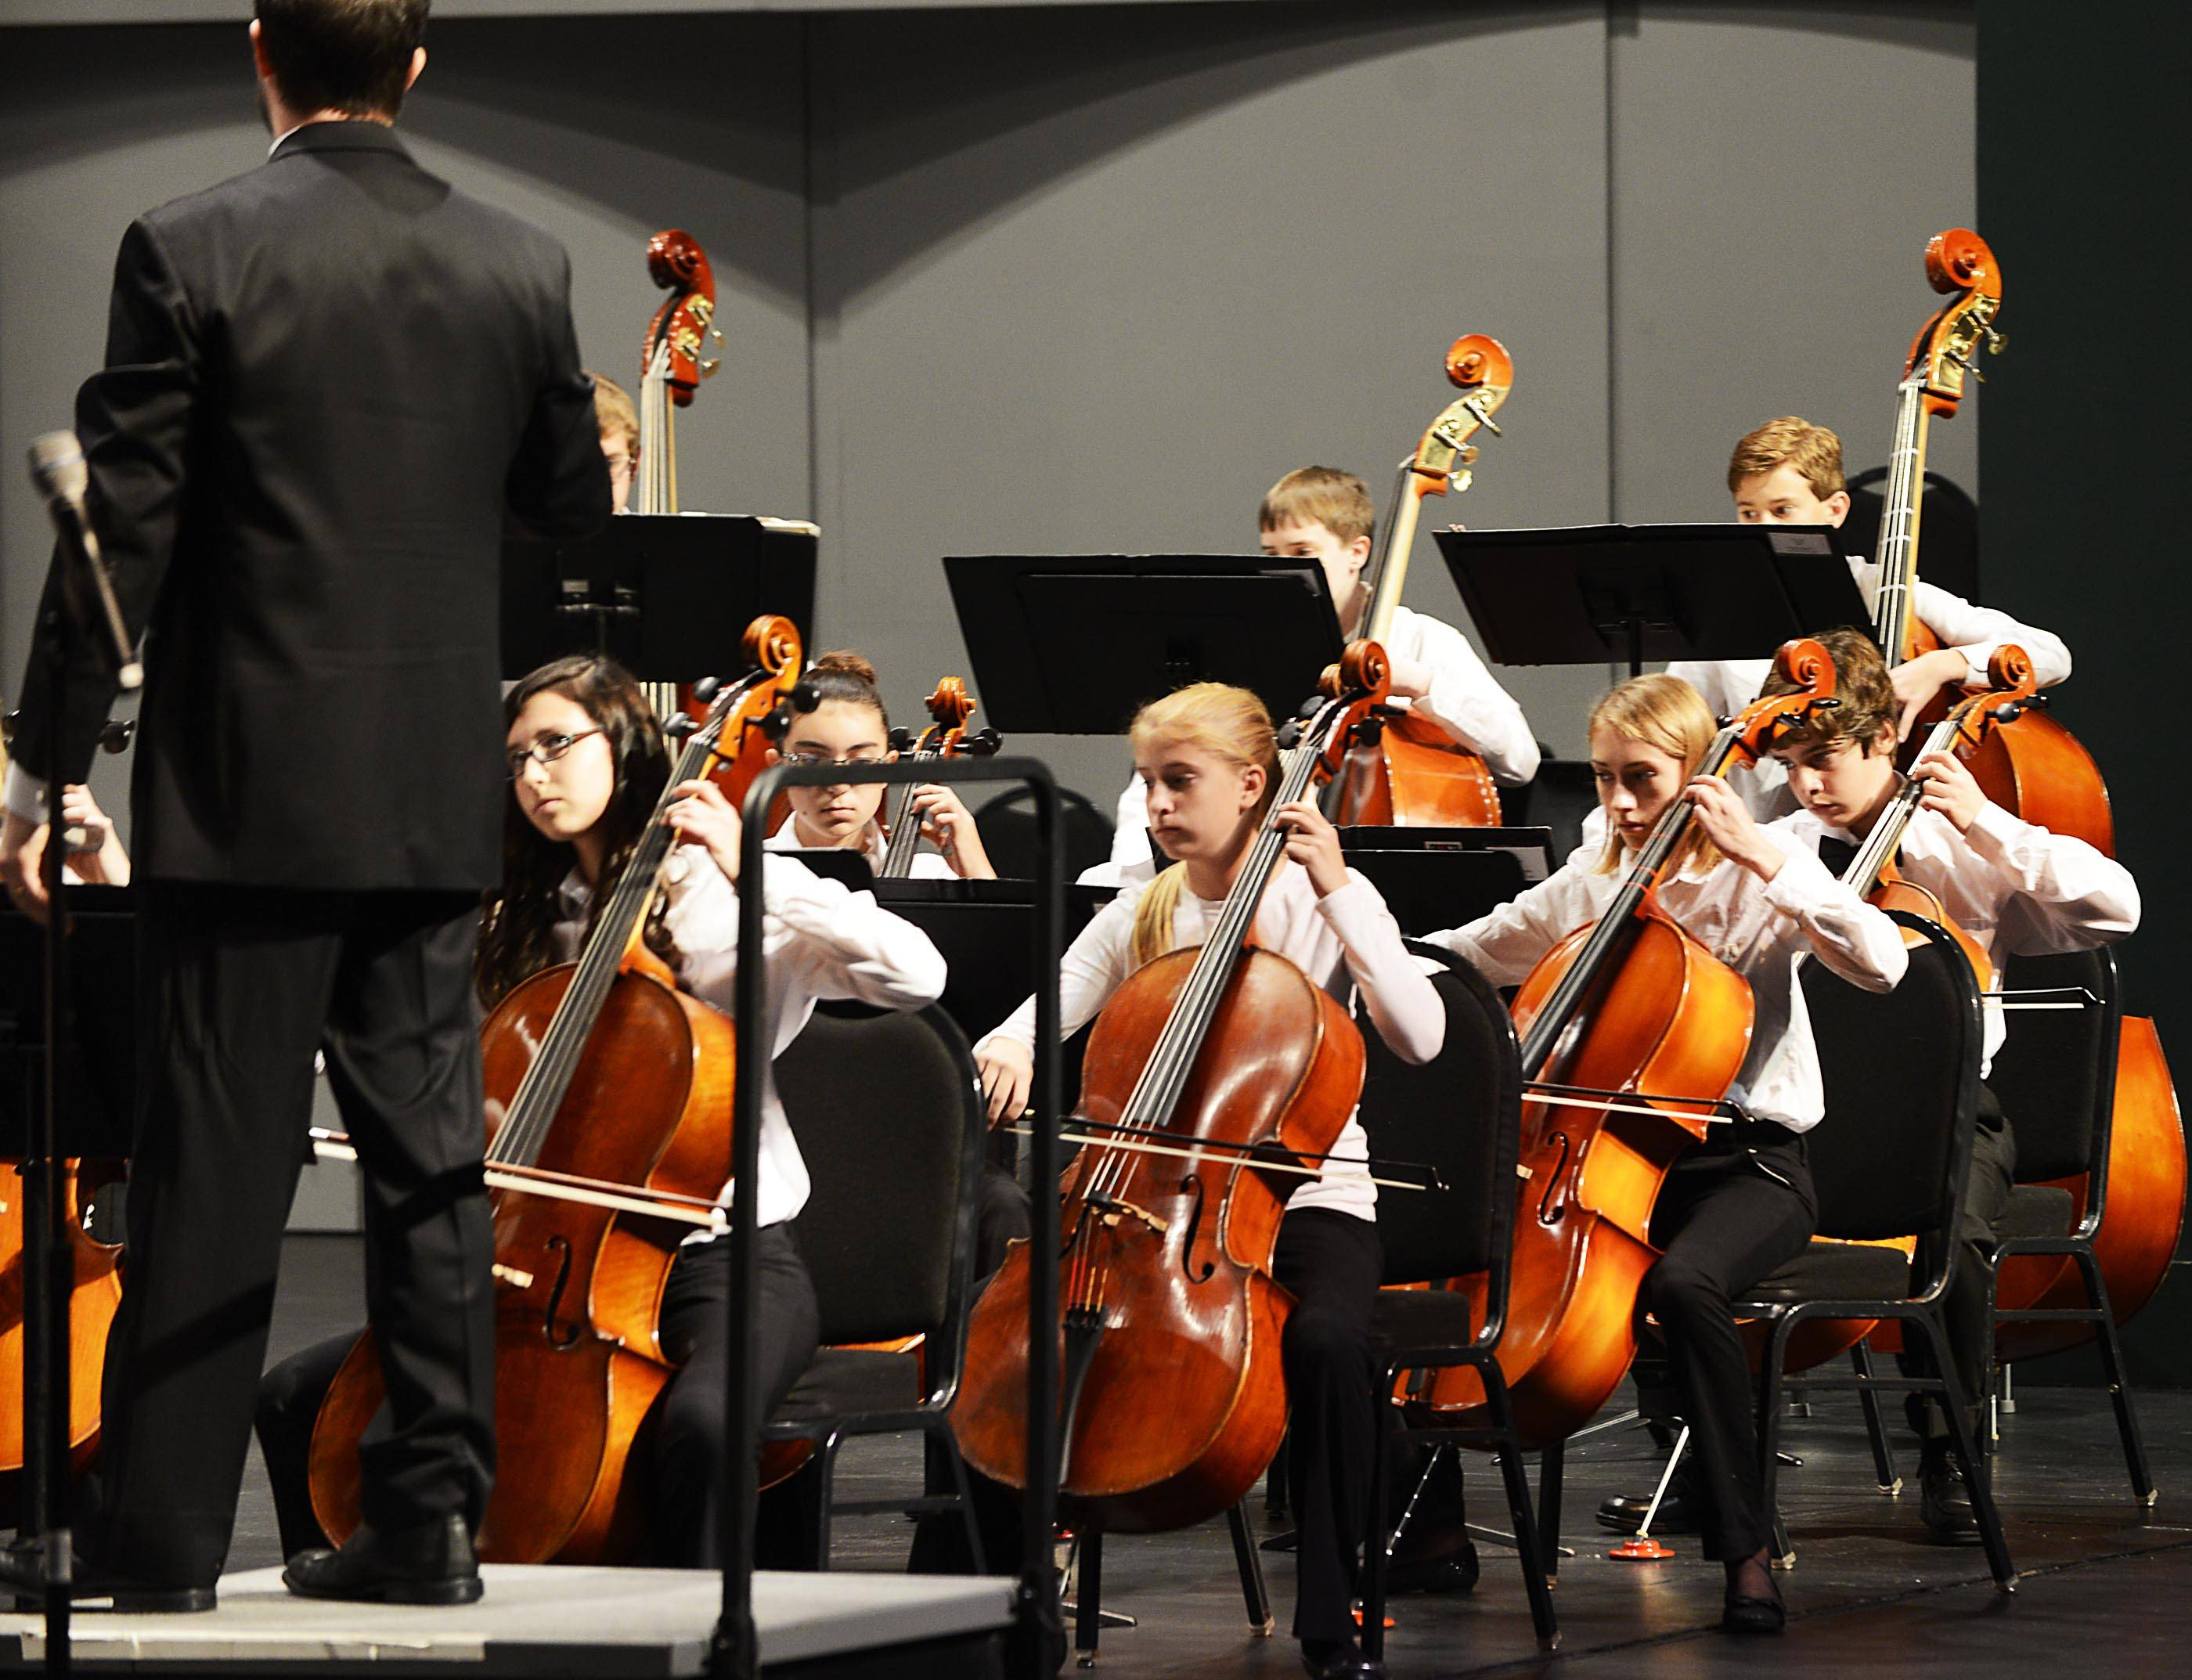 The Elgin Youth Symphony Orchestra will be auditioning students for its 39th season on May 29-June 1.